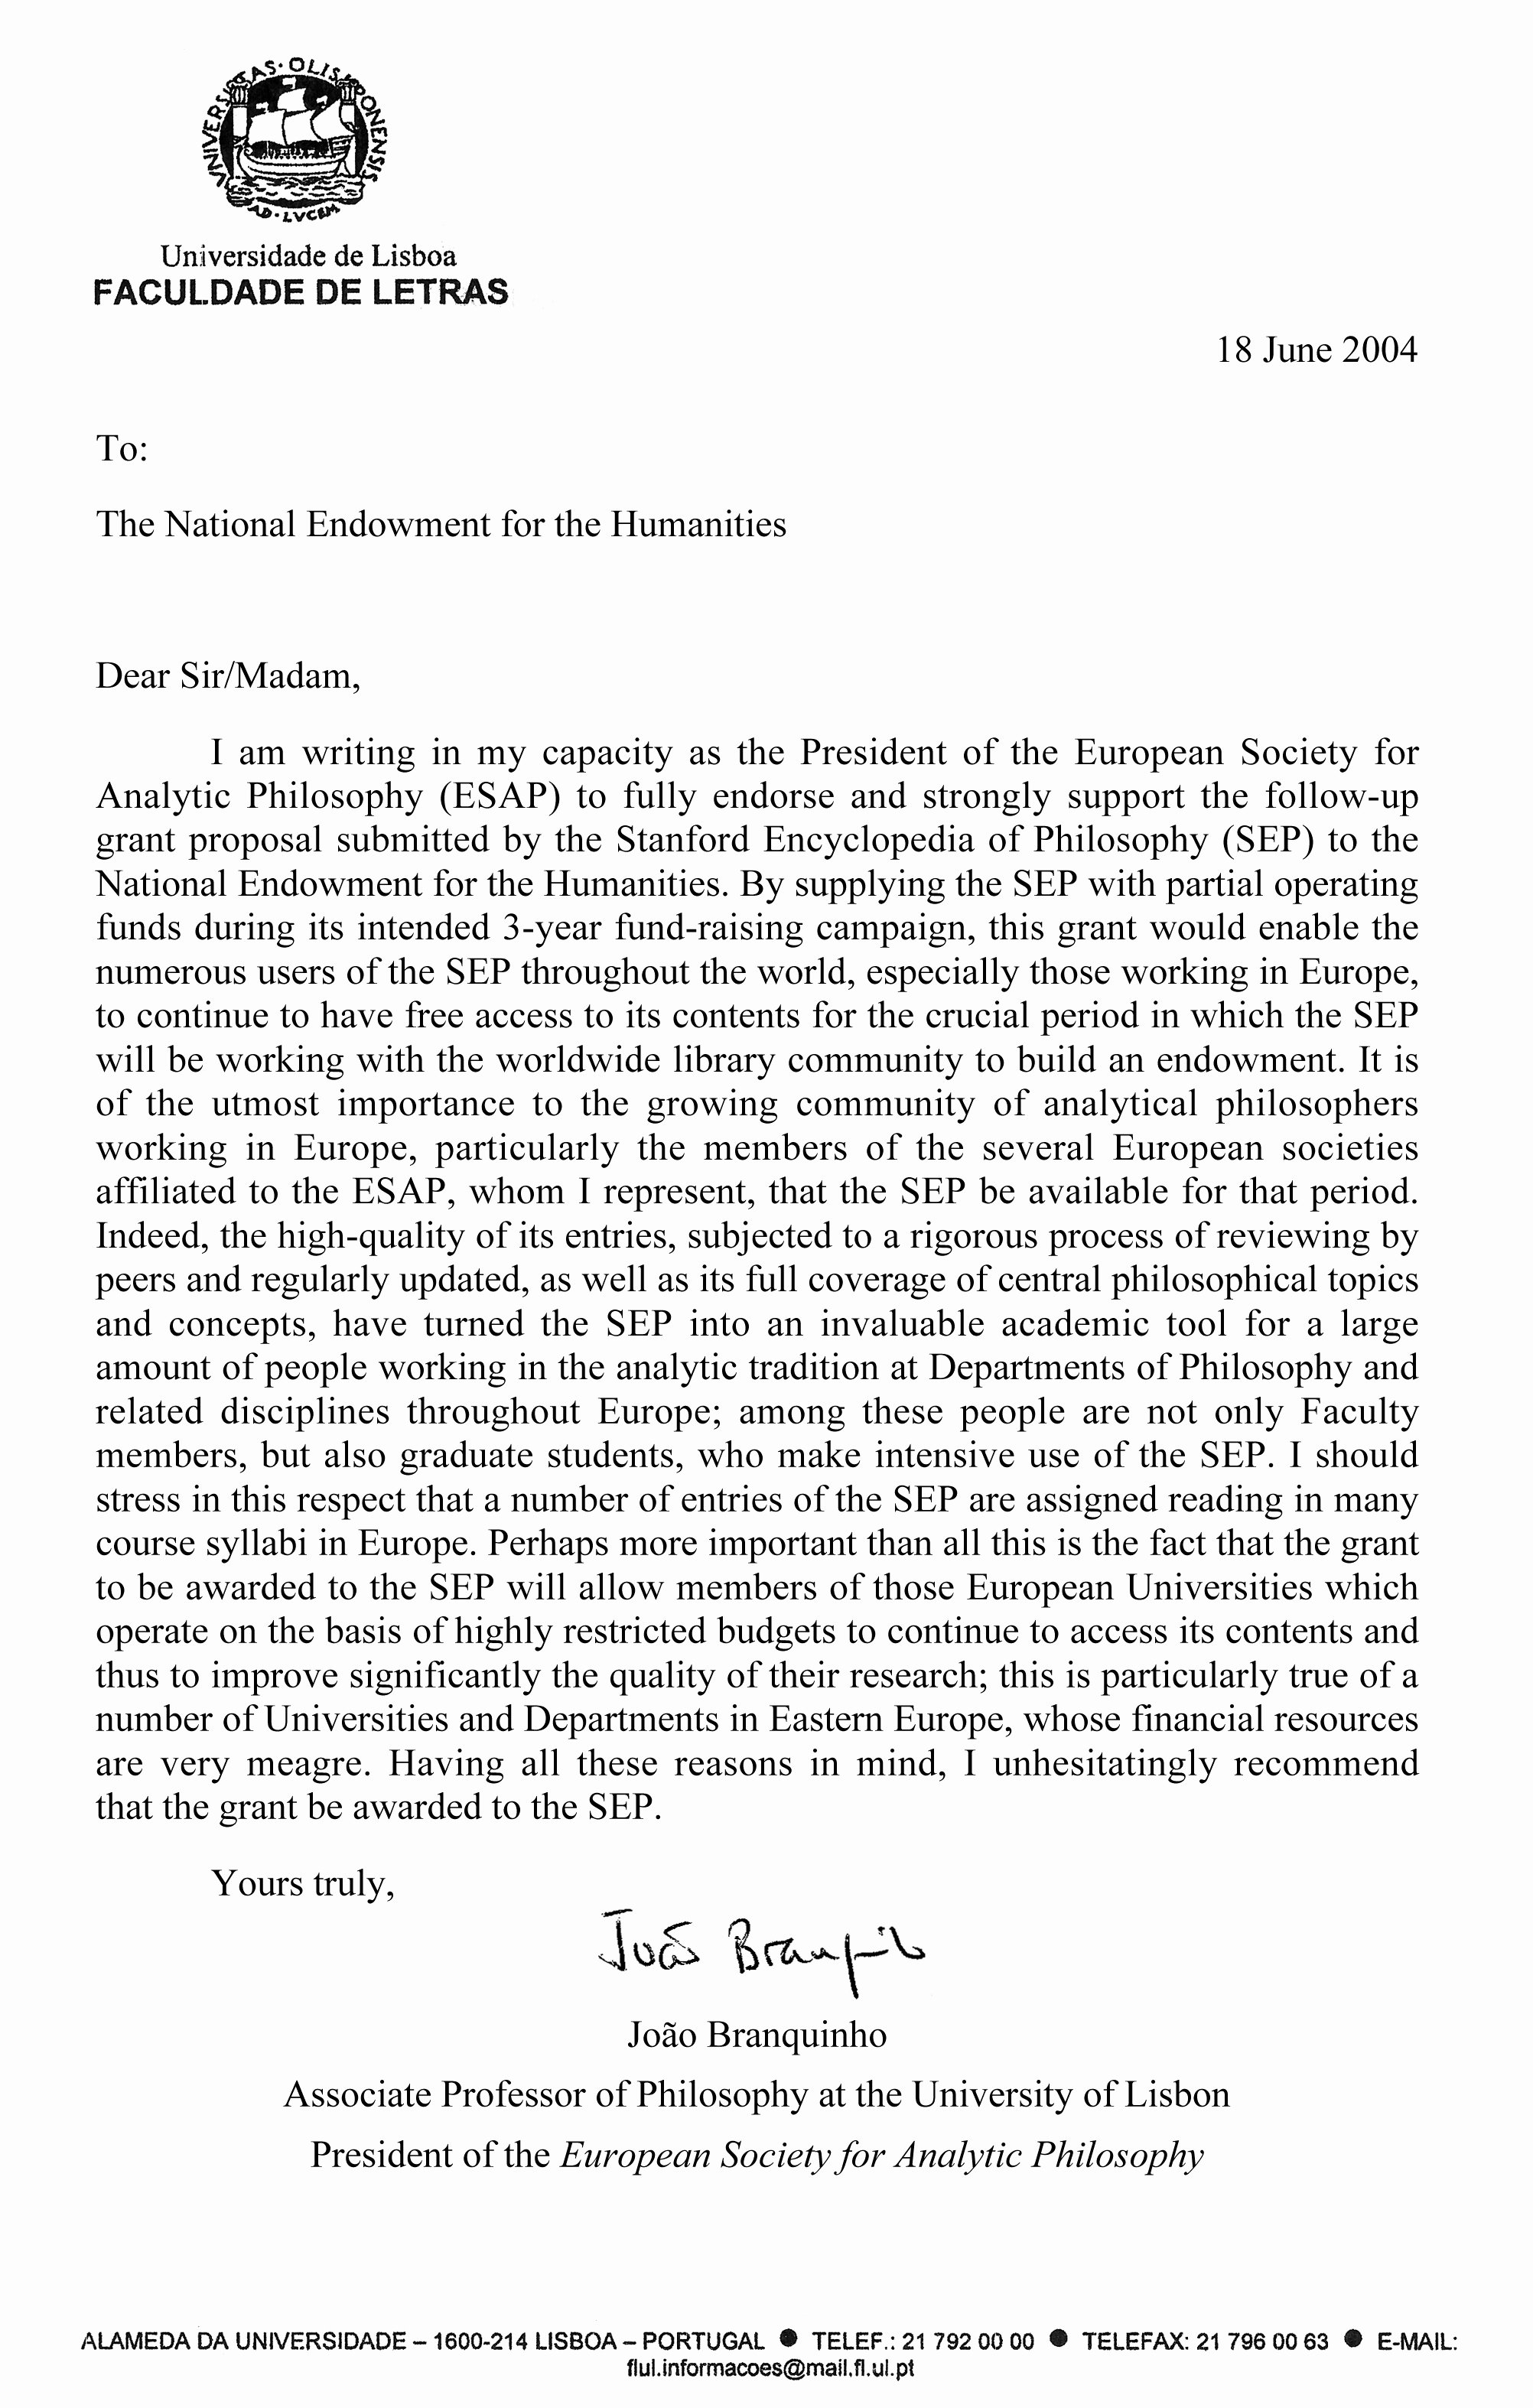 Letter Of Support format Inspirational Esap S Letter In Support Of Neh Grant